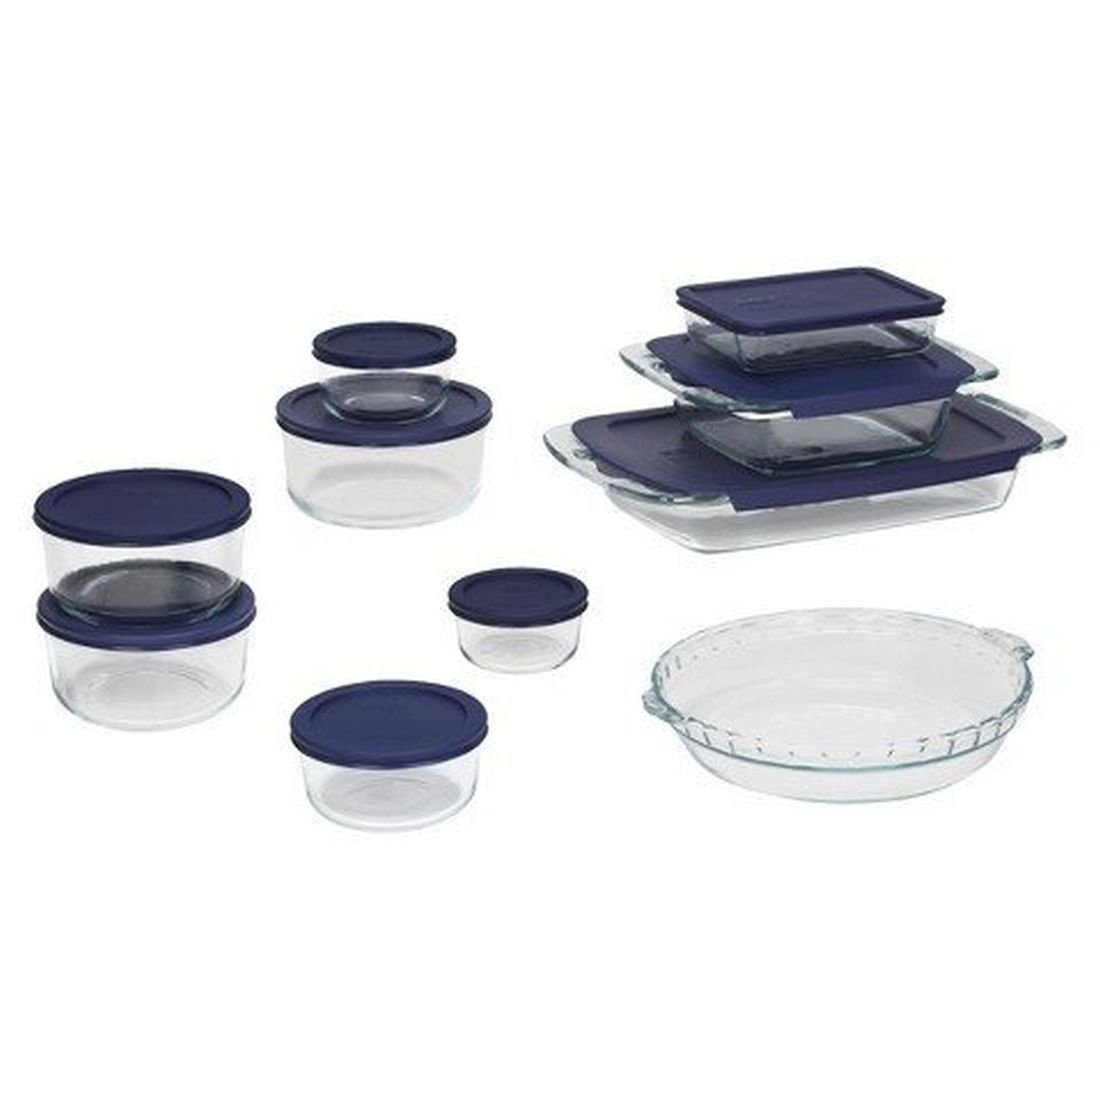 Pyrex 19 Piece Bake and Store Set - Clear 070-02-0083